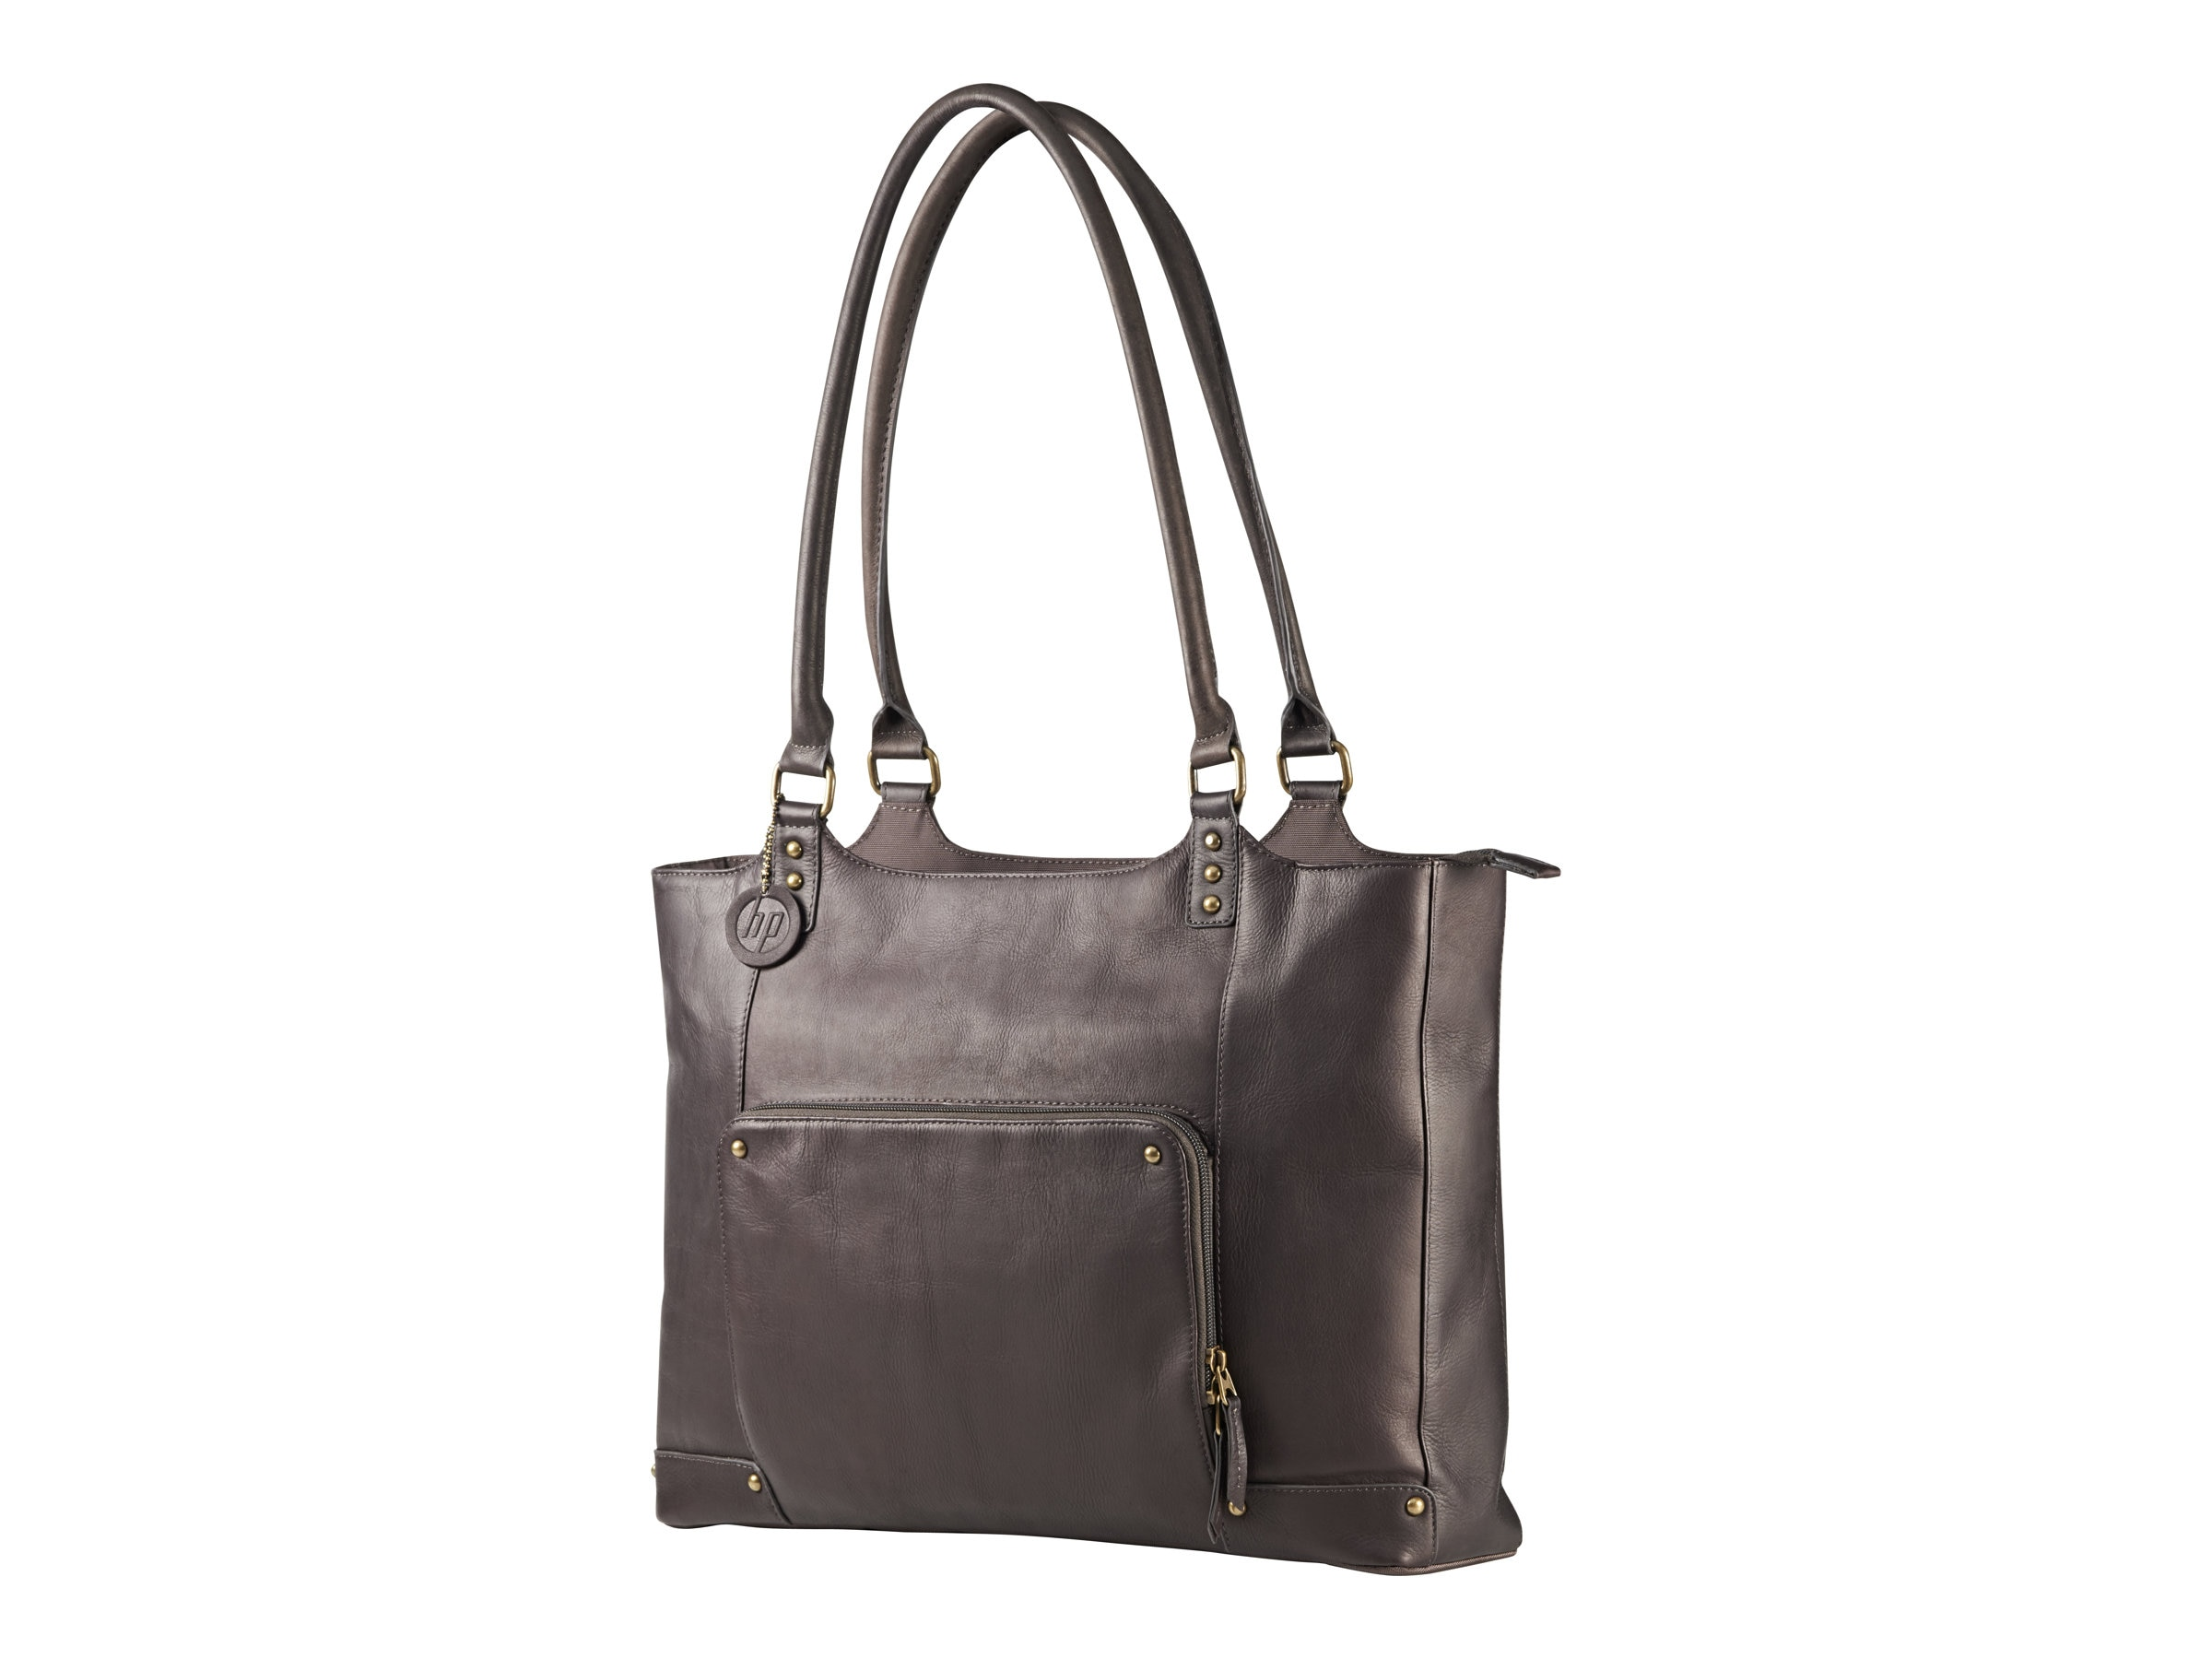 HP Ladies Leather Tote, Brown, F3W12AA